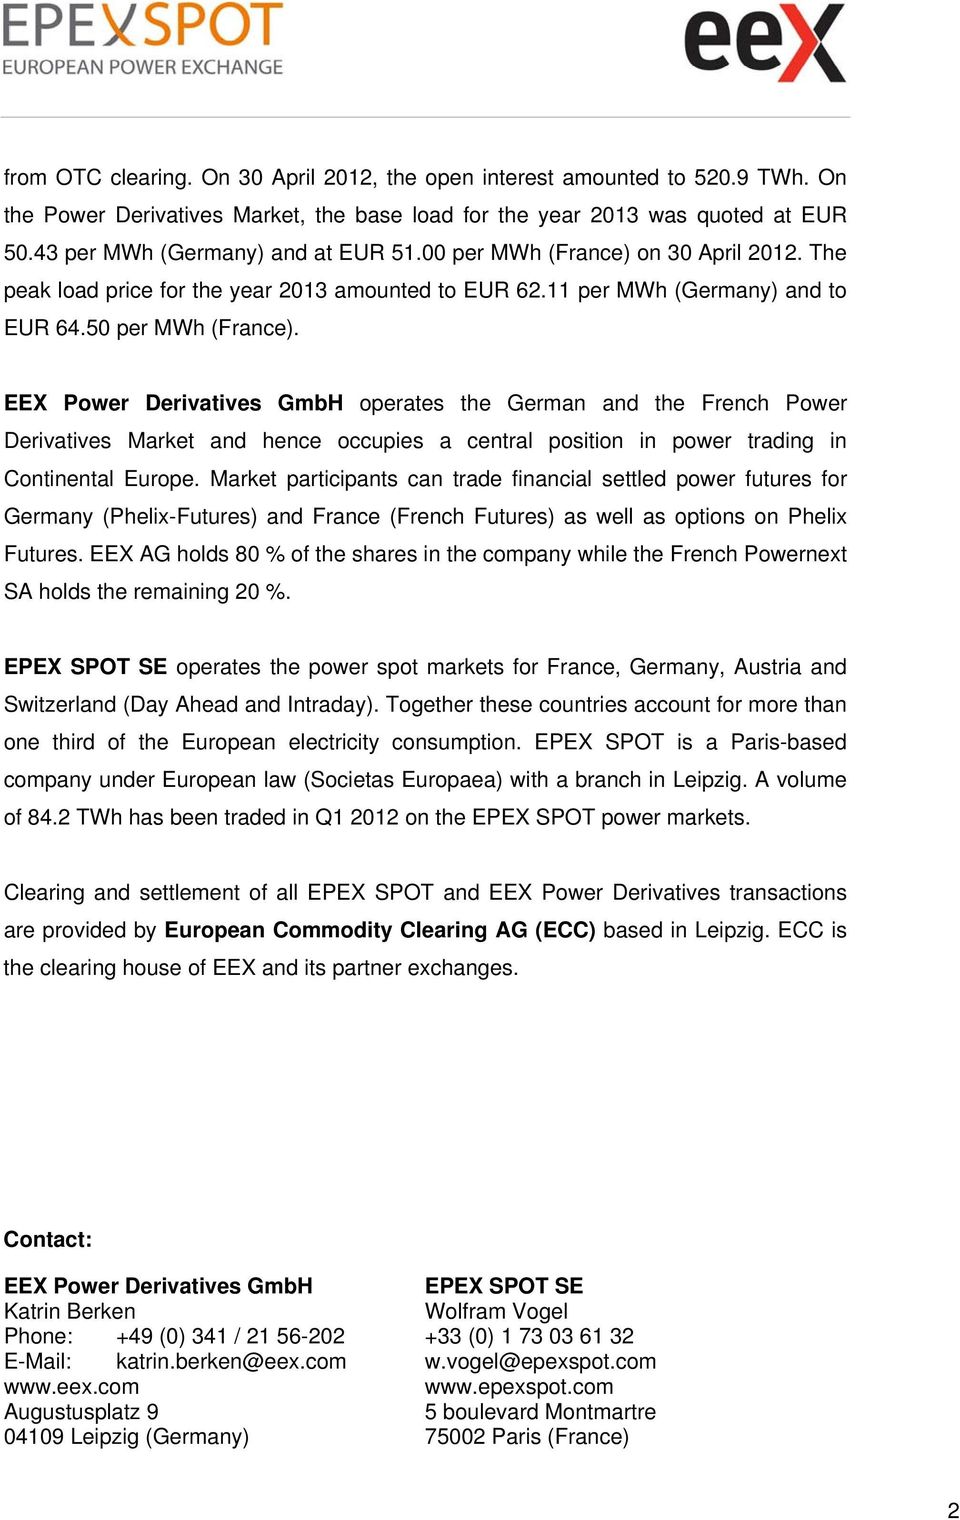 EEX Power Derivatives GmbH operates the German and the French Power Derivatives Market and hence occupies a central position in power trading in Continental Europe.